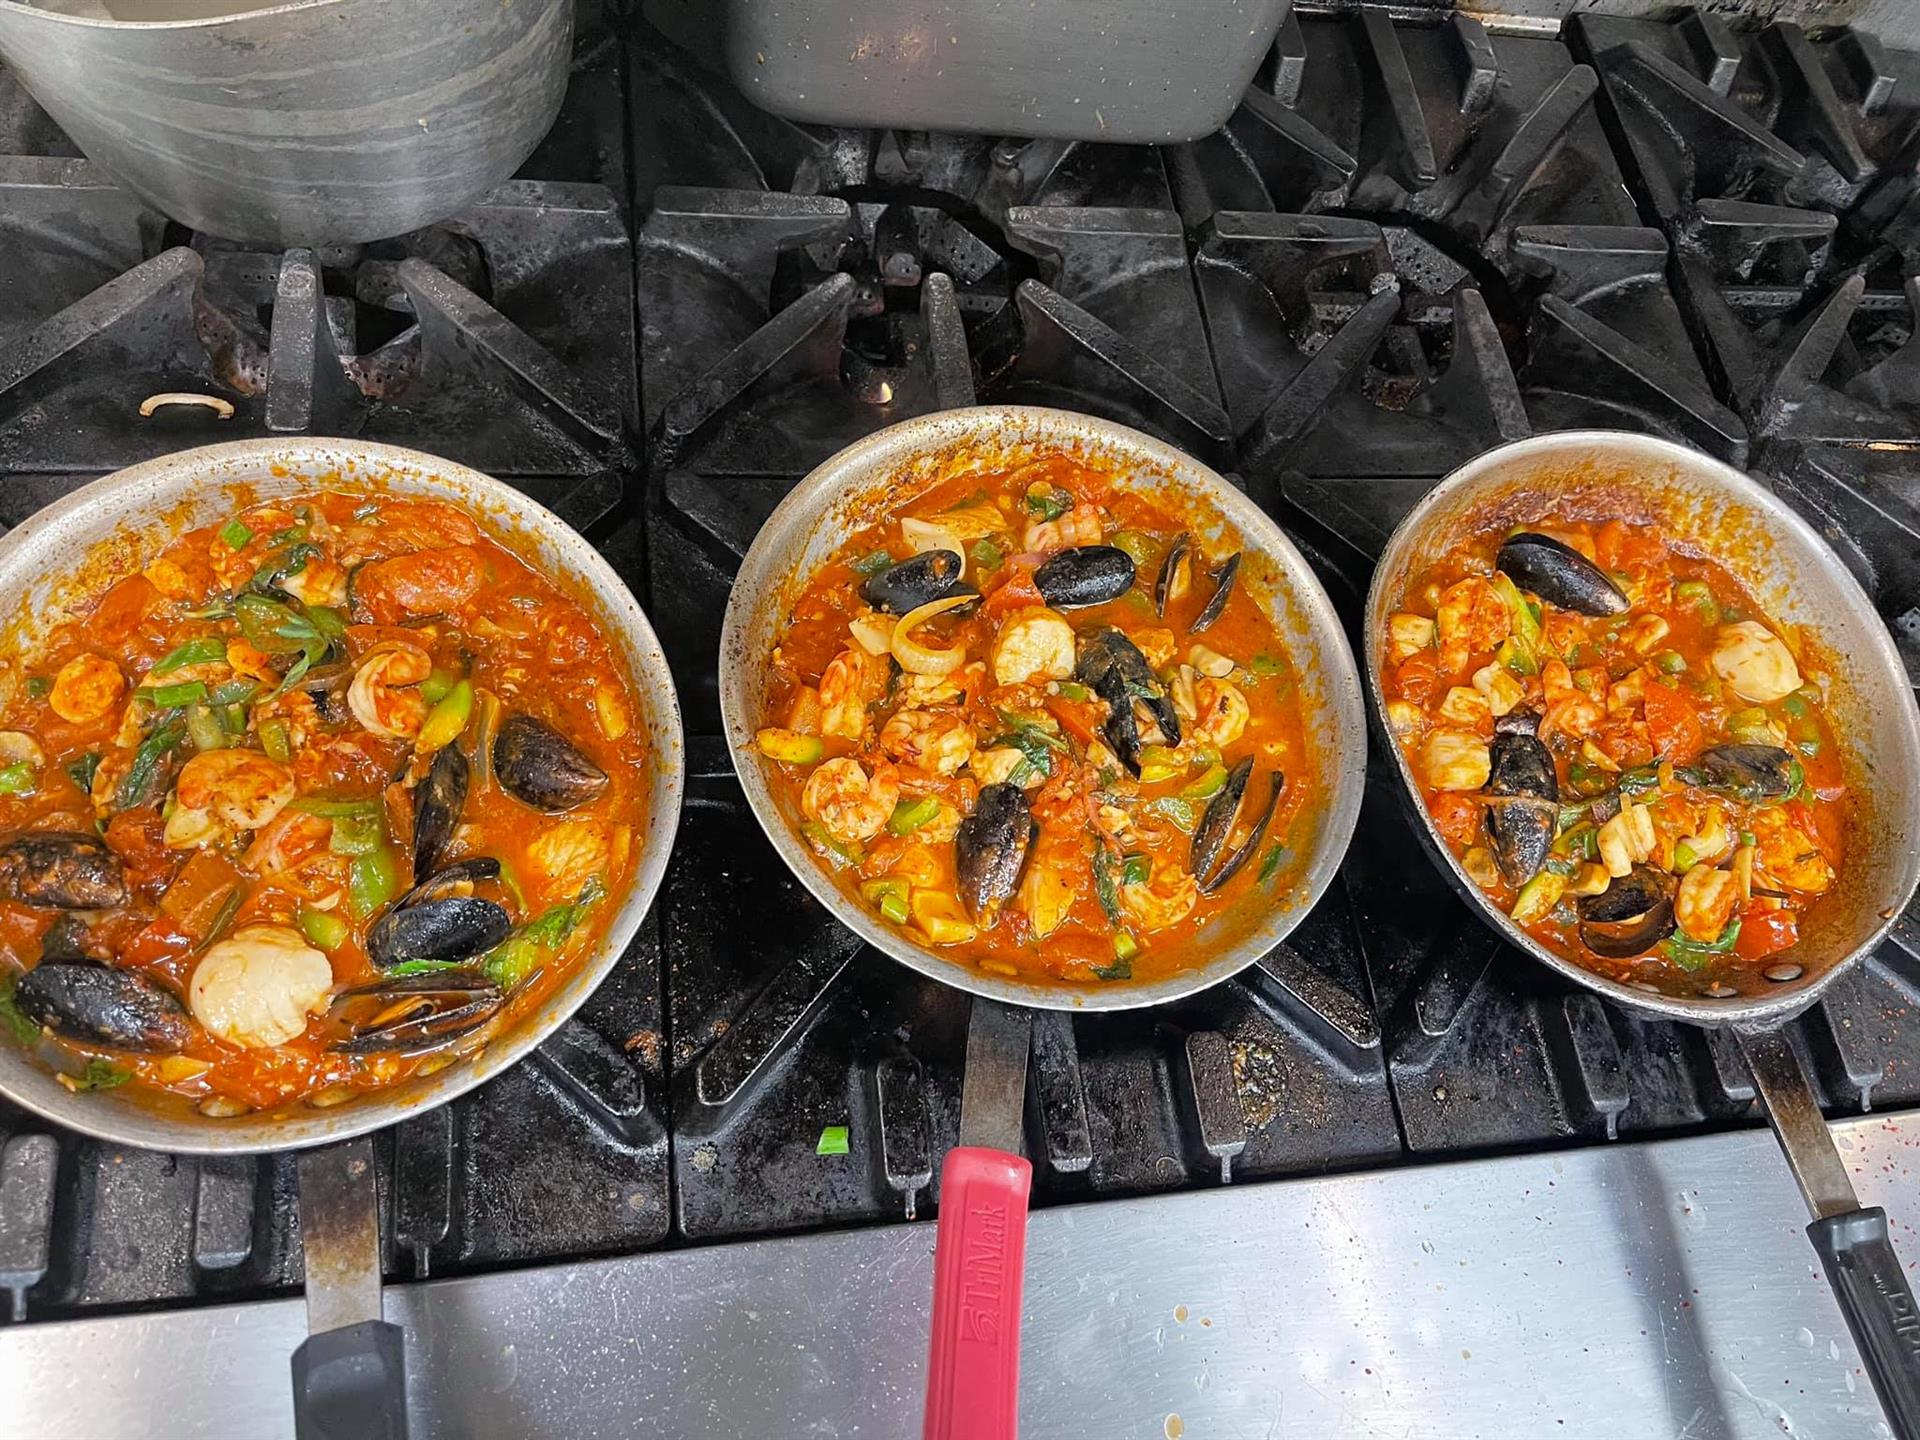 Pots of food cooking on stove